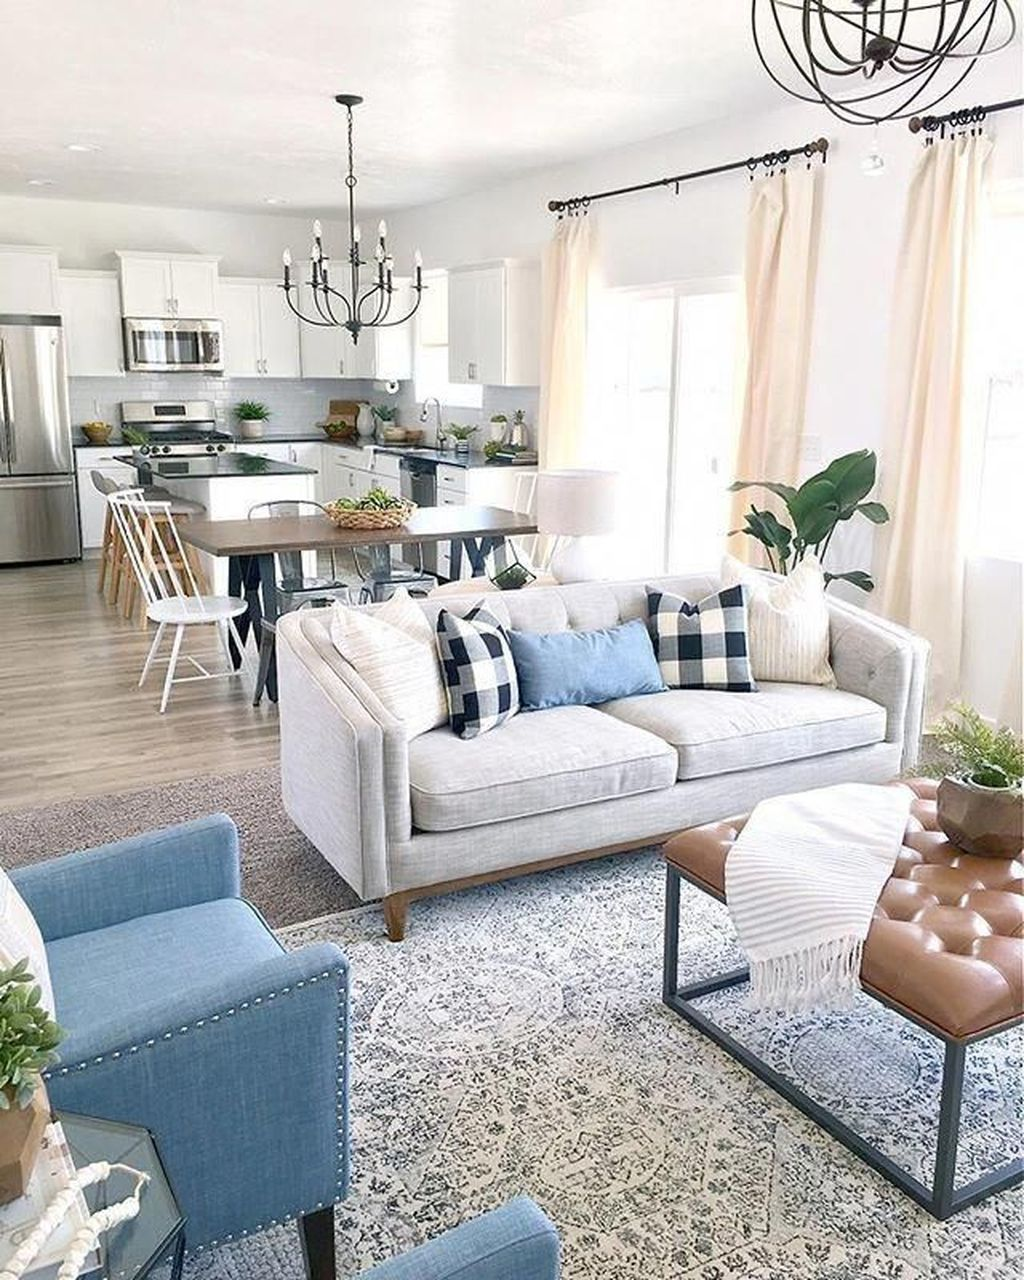 Small Living Roomdesign Ideas: 37 Popular Small Living Room Design And Decor Ideas For